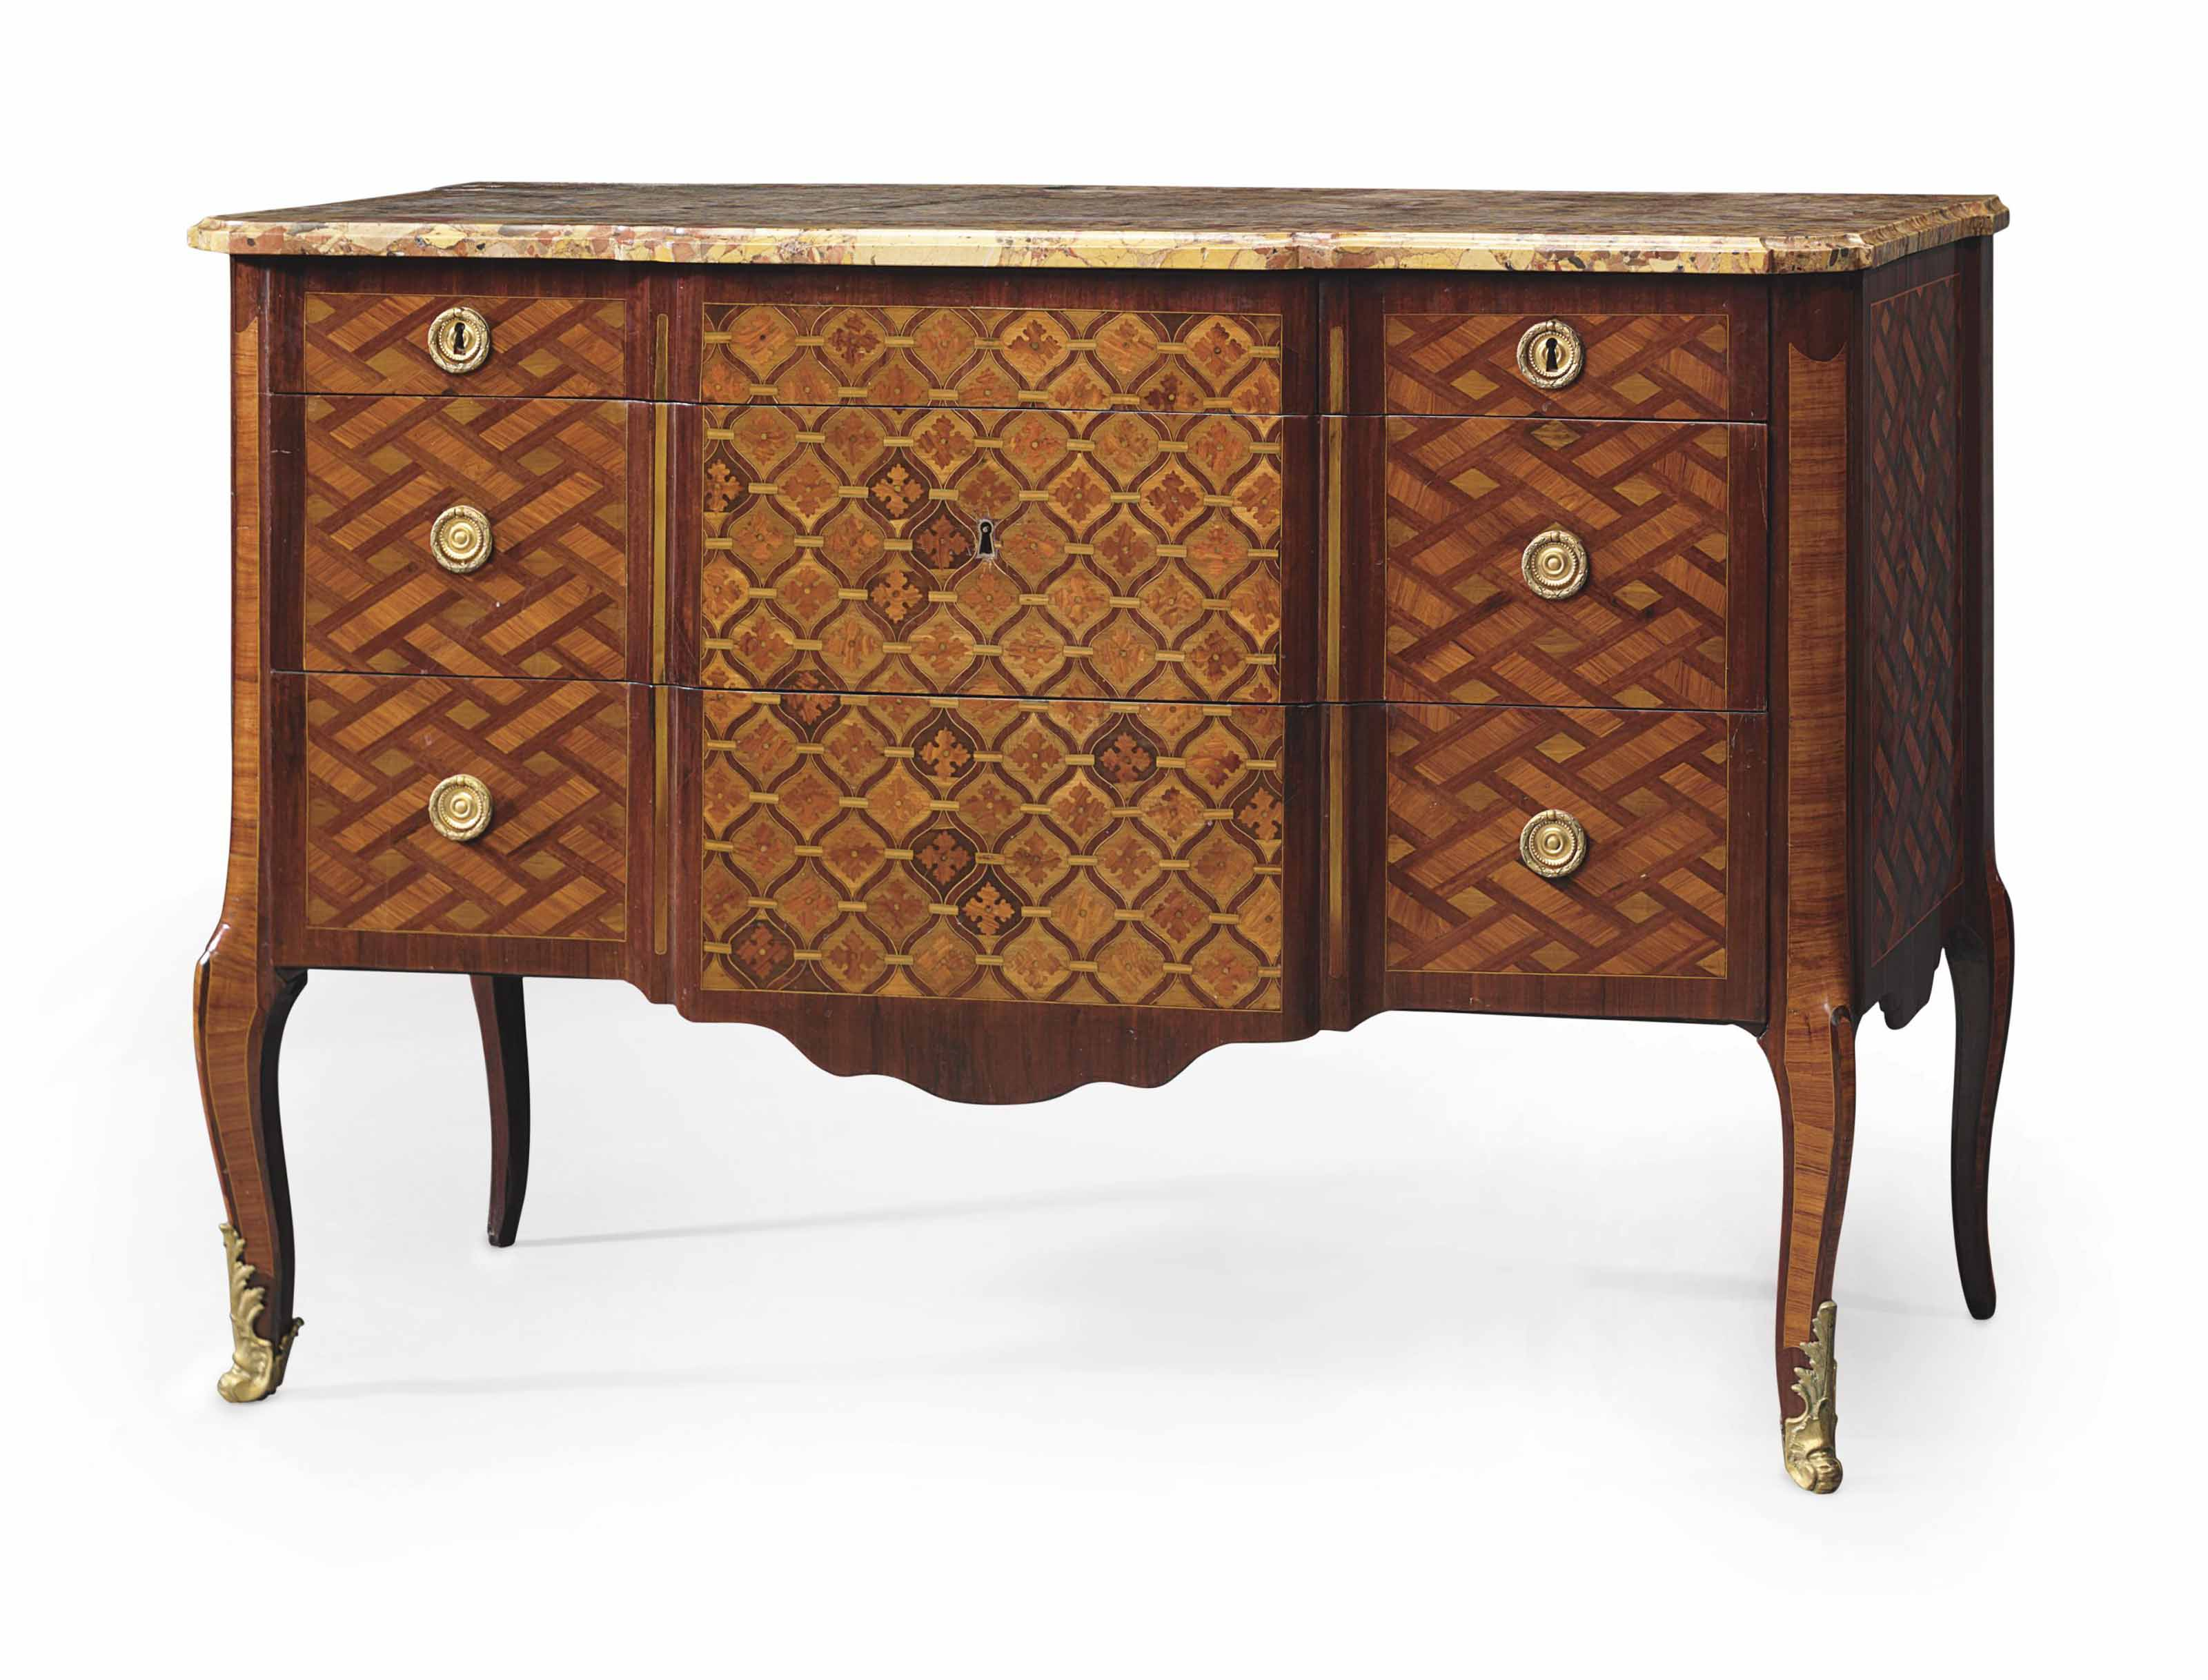 A LATE LOUIS XV TULIPWOOD, AMARANTH, BOIS SATINE AND PARQUETRY COMMODE